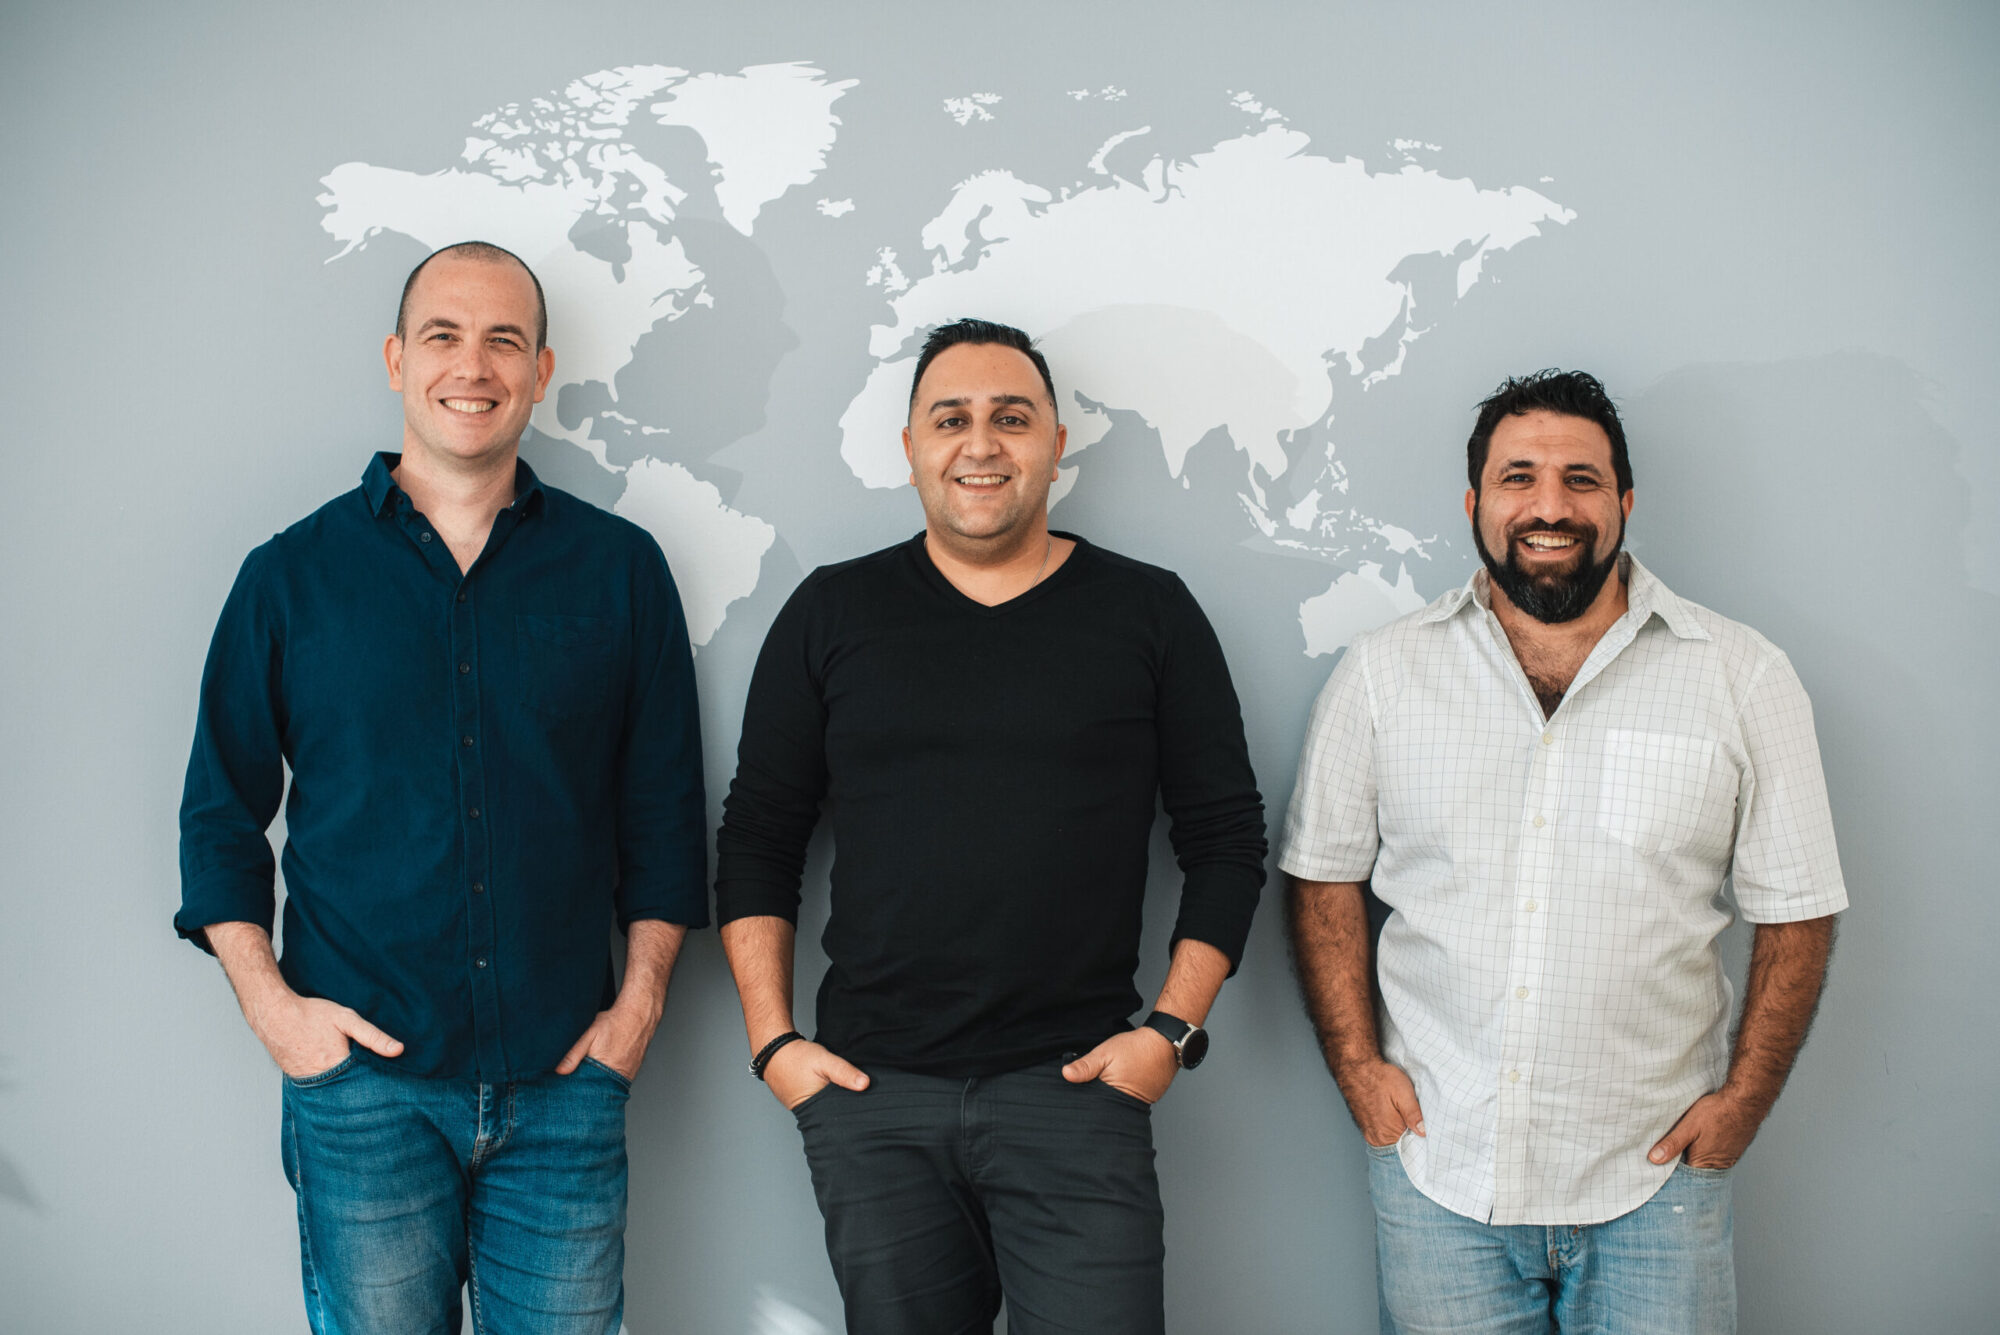 Dataloop raises $16m to expand AI data labelling software business